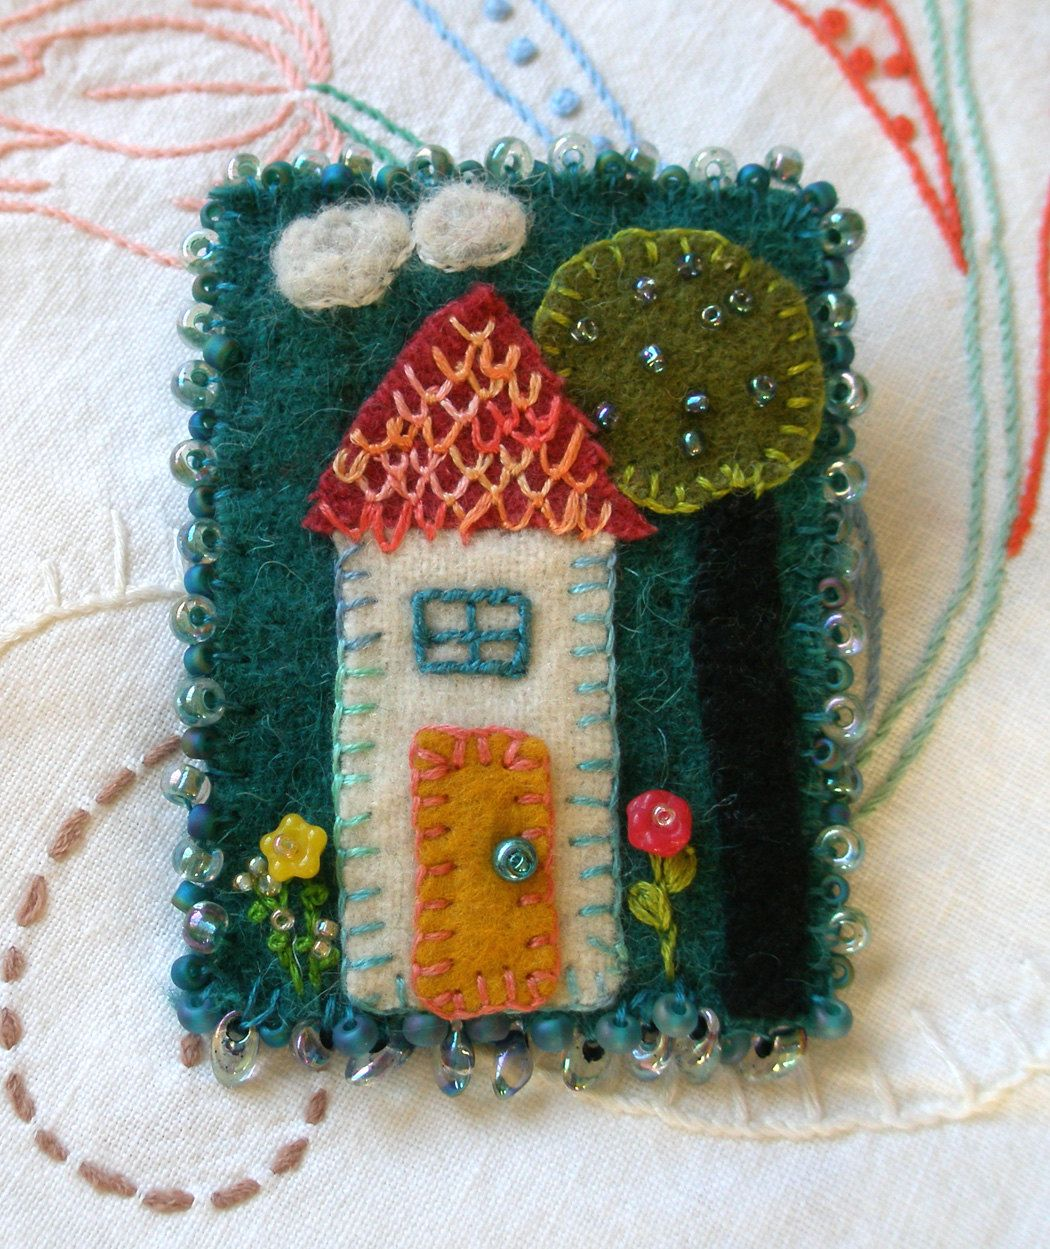 Home Sweet Home Brooch wool, beads and embroidery...easy would look great surrounded by a matt and framed. Great gifts.